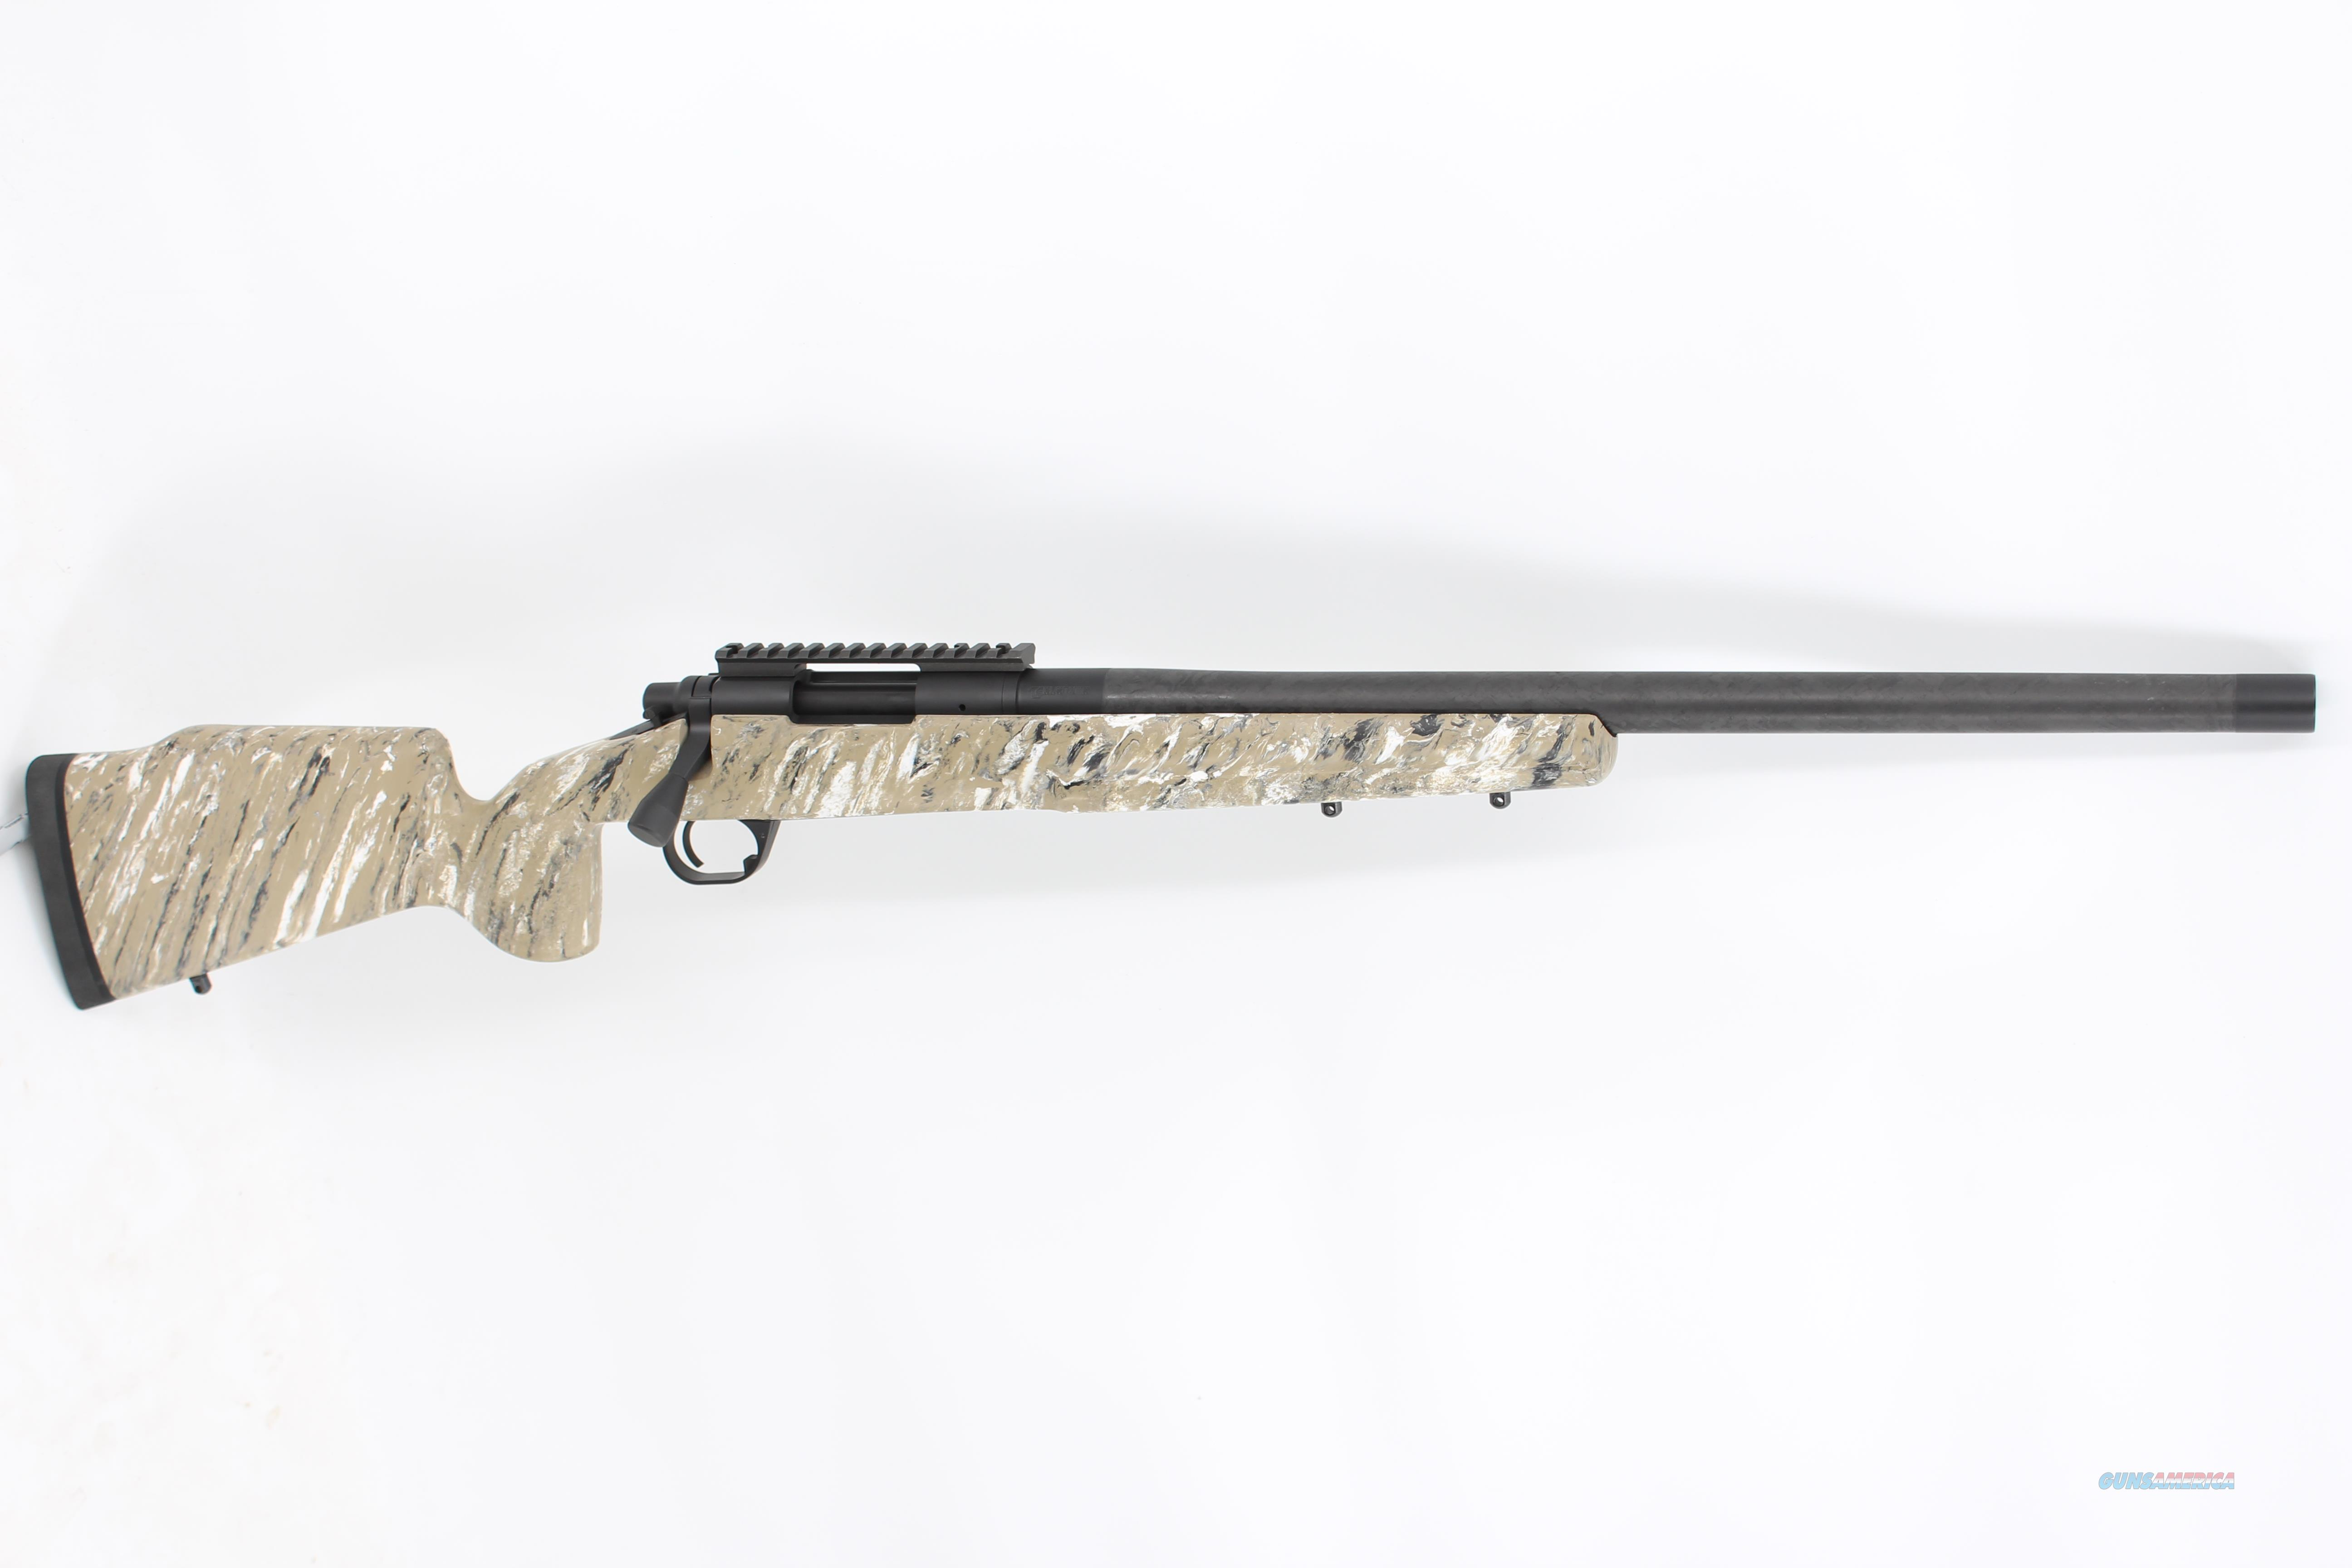 TS Customs Trued Rem700 204 McMillan Proof Research Triggertech Special 22